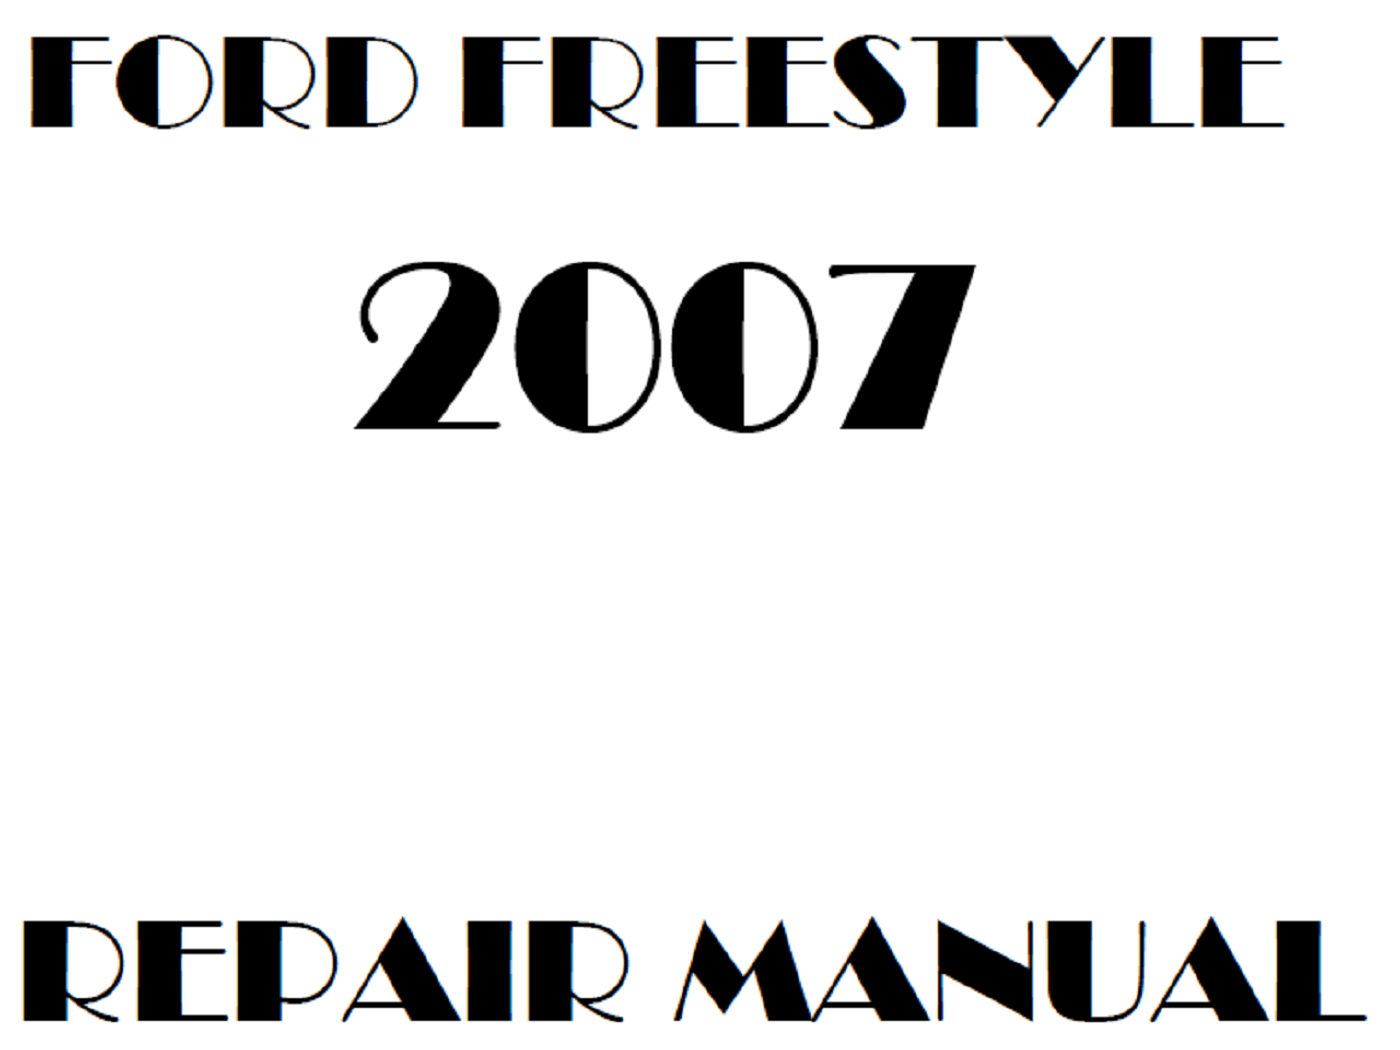 2007 Ford Freestyle repair manual